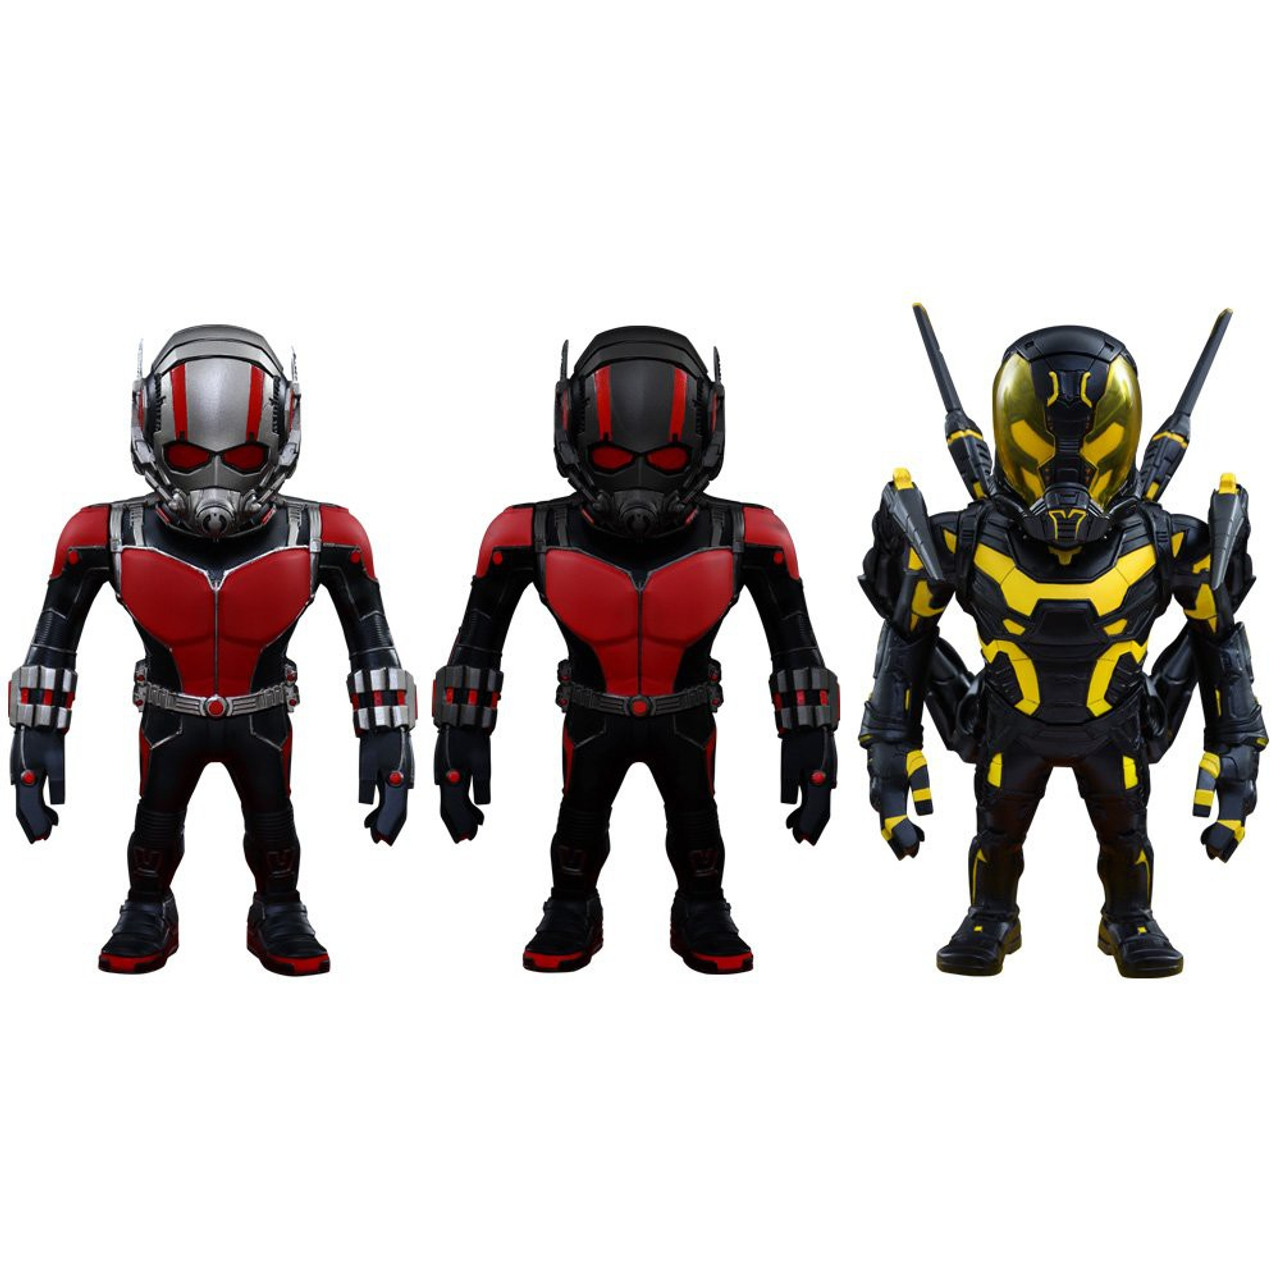 Marvel Artist Mix Ant-Man 6-Inch Deluxe Collectible Figure Set